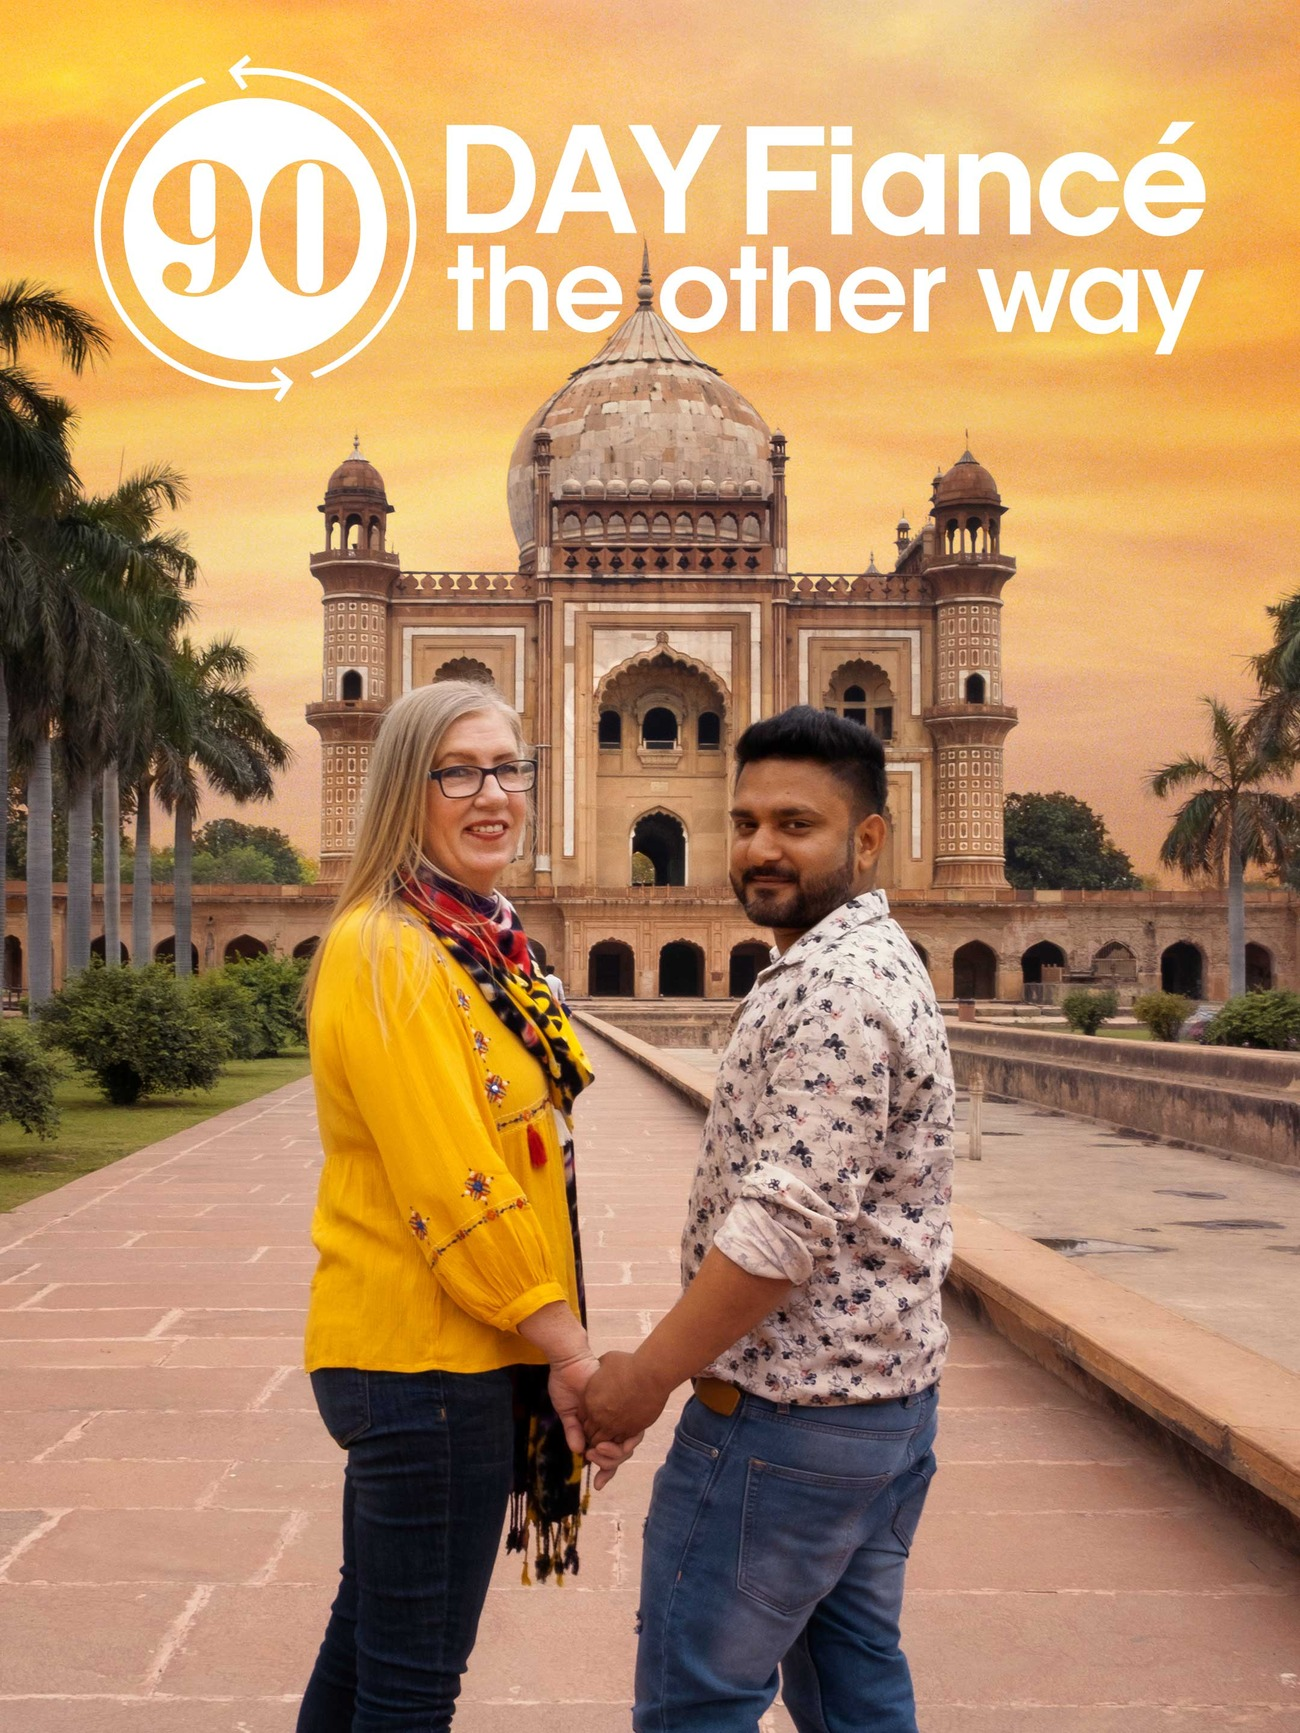 90 Day Fiancé: The Other Way - Season 2